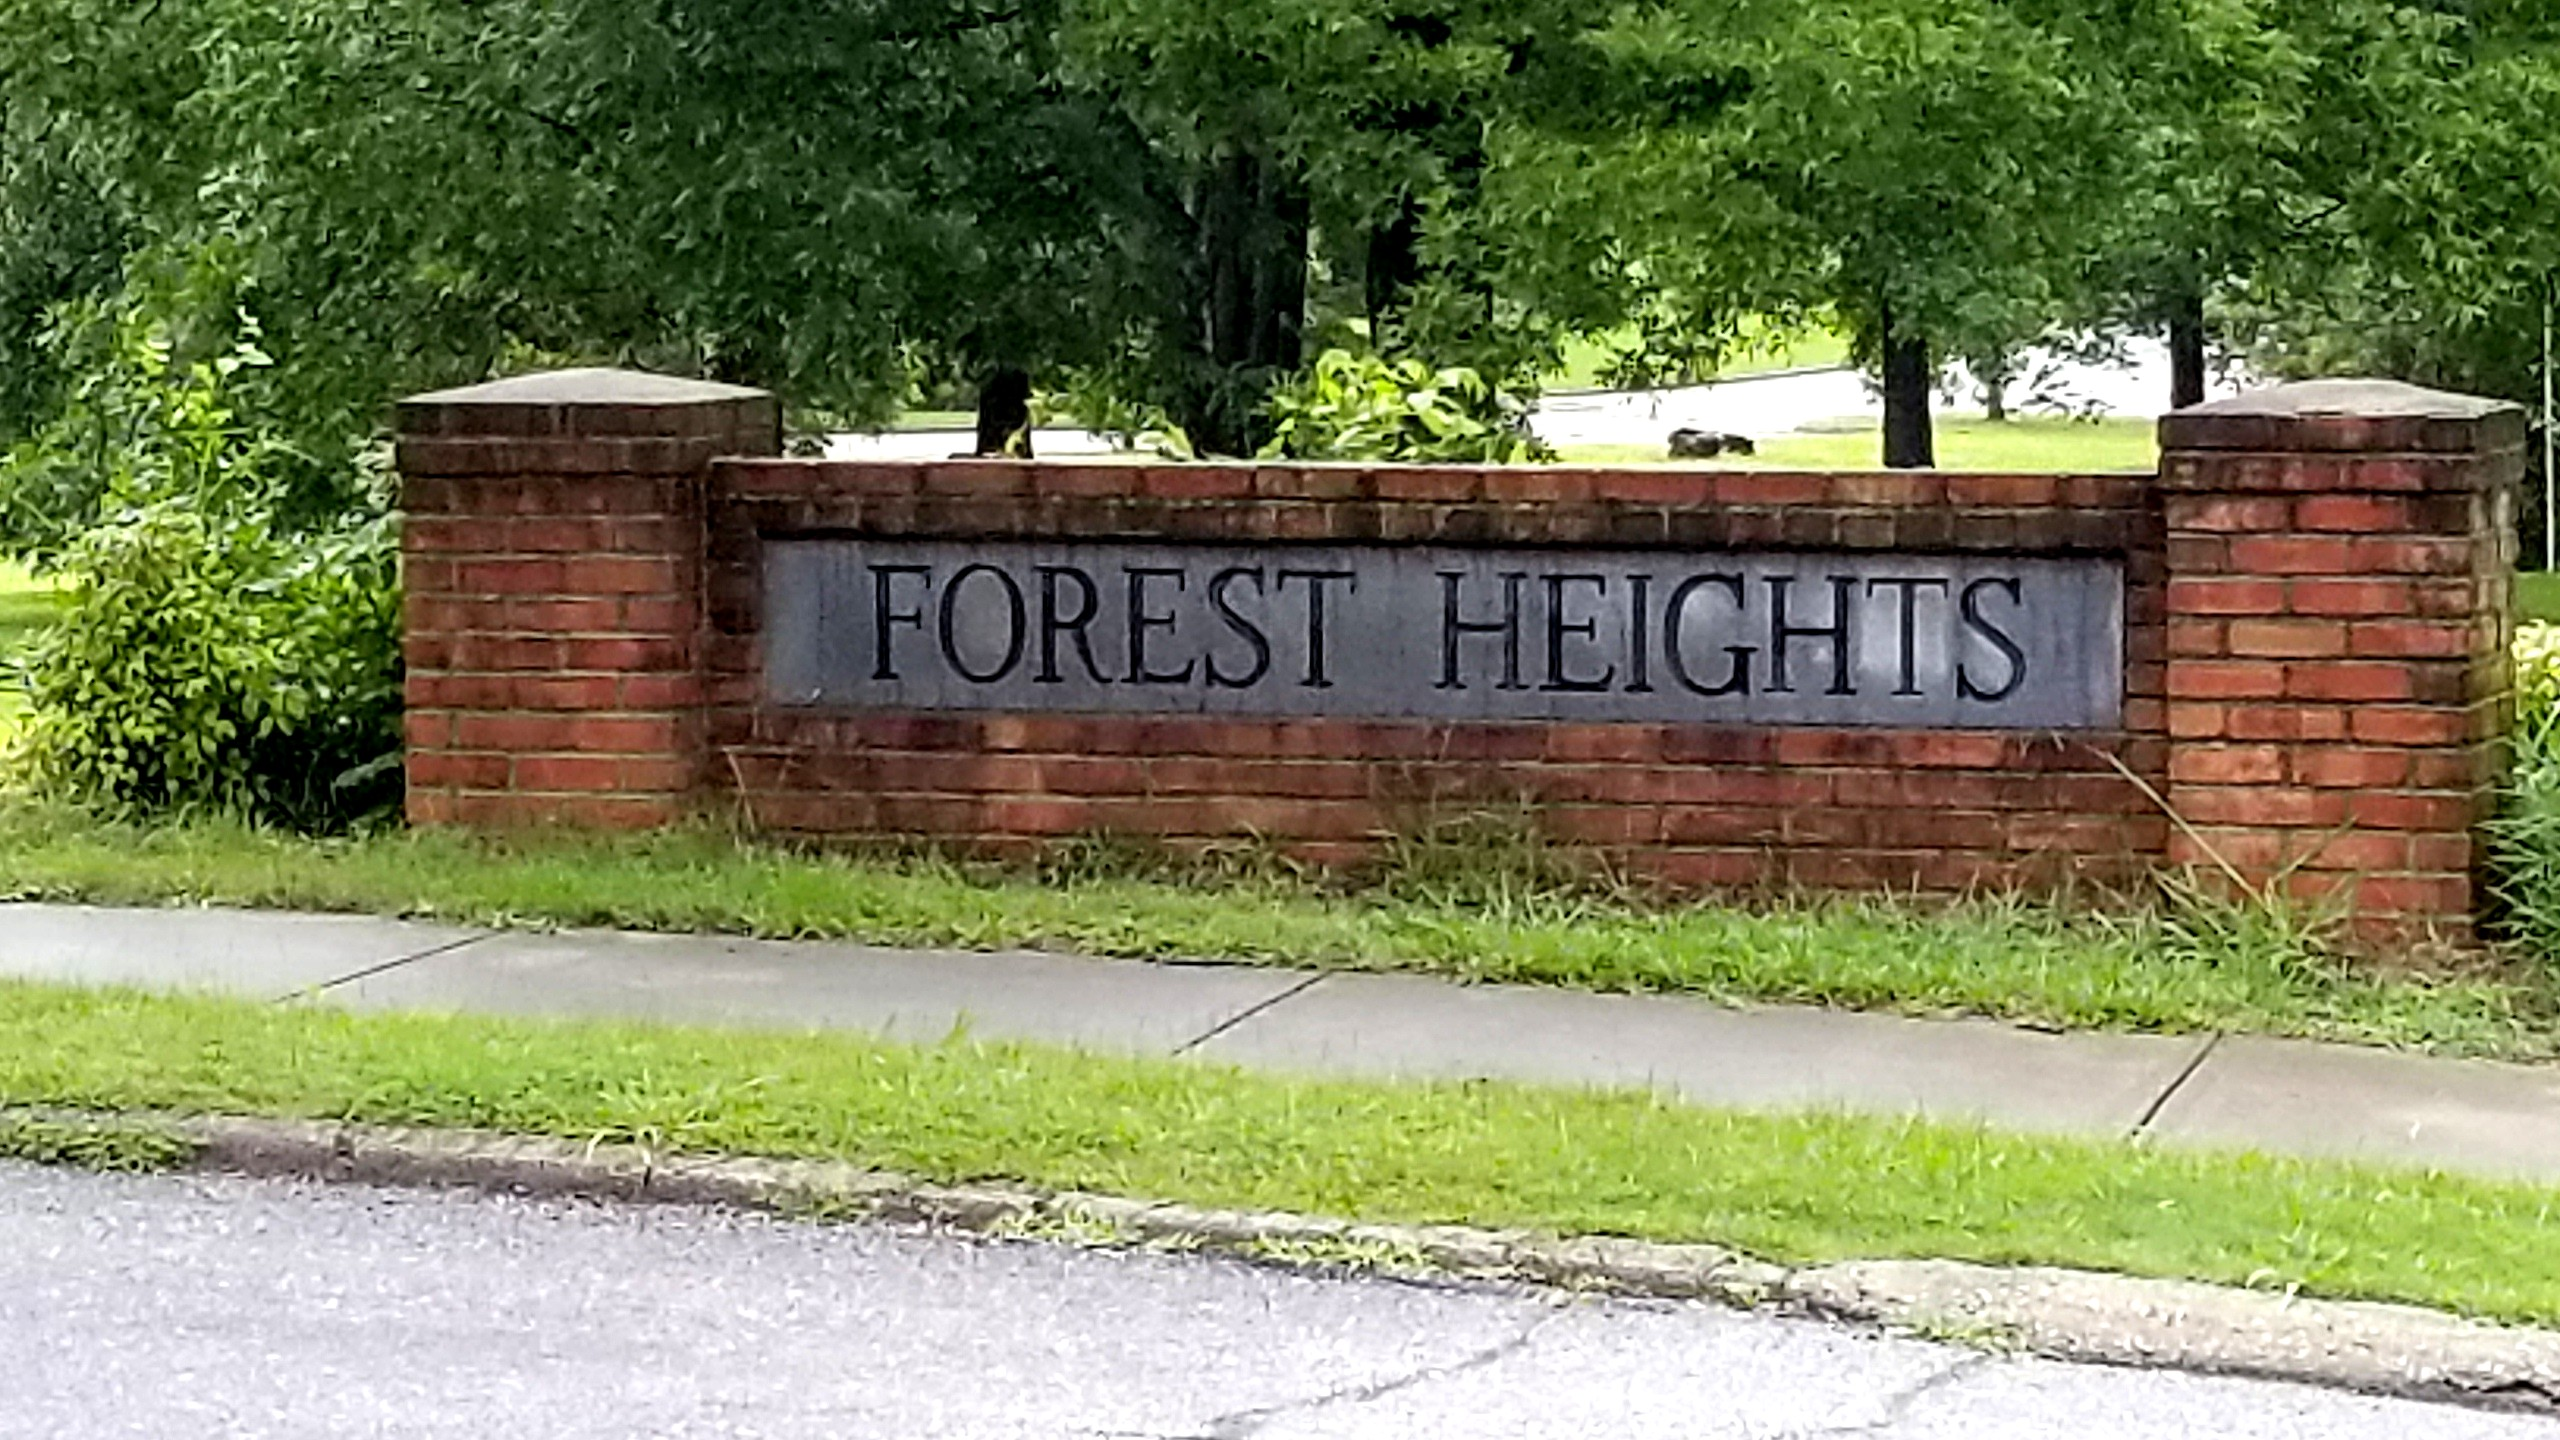 Forest Heights Neighborhood - Athens, GA